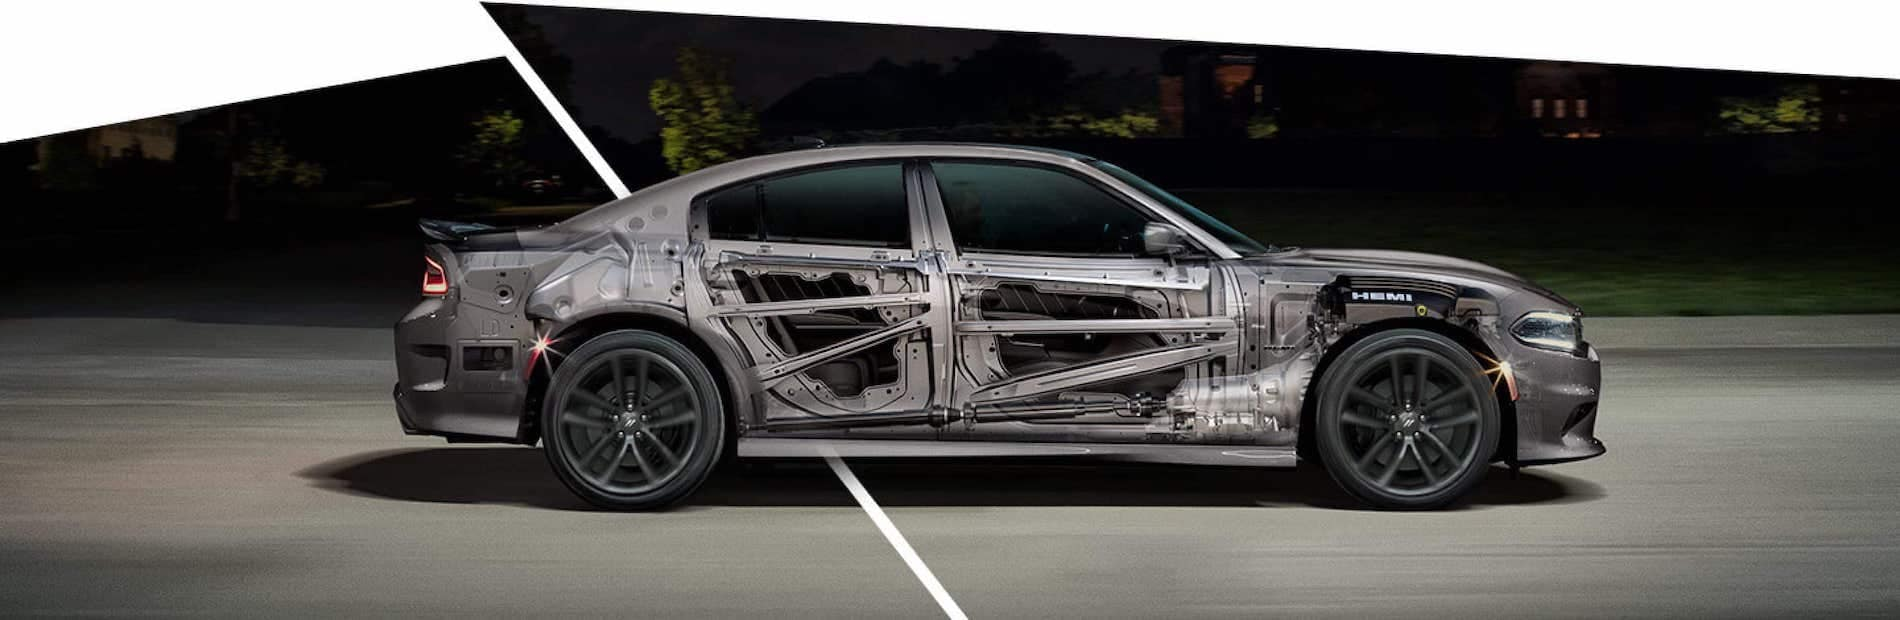 2021 Dodge Charger Safety Features